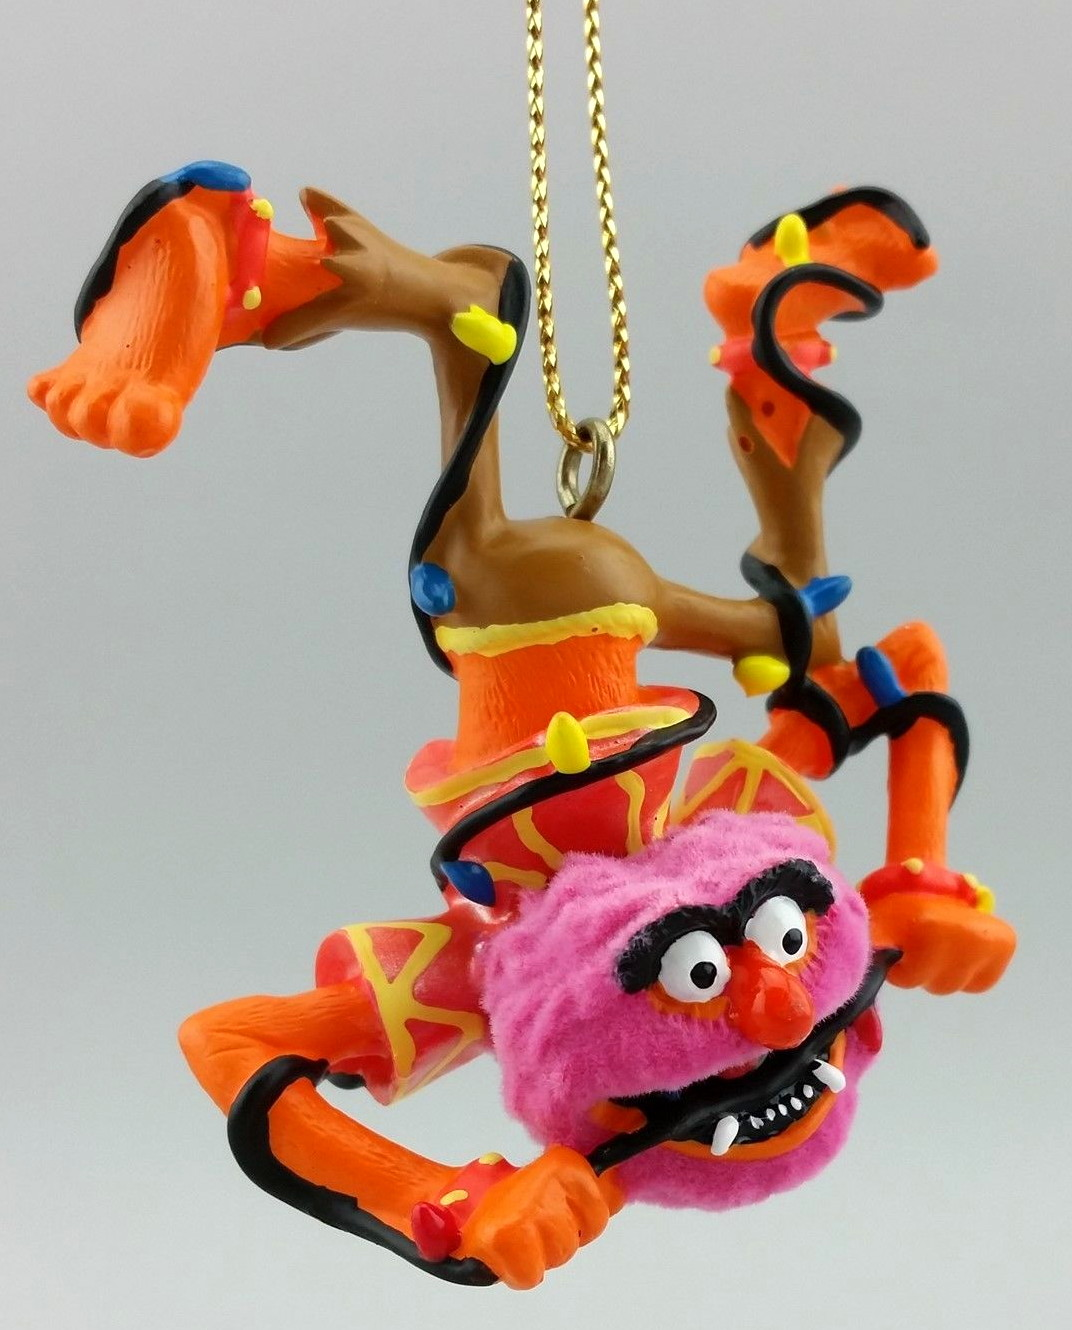 Muppet Christmas Ornaments (Disney Store)